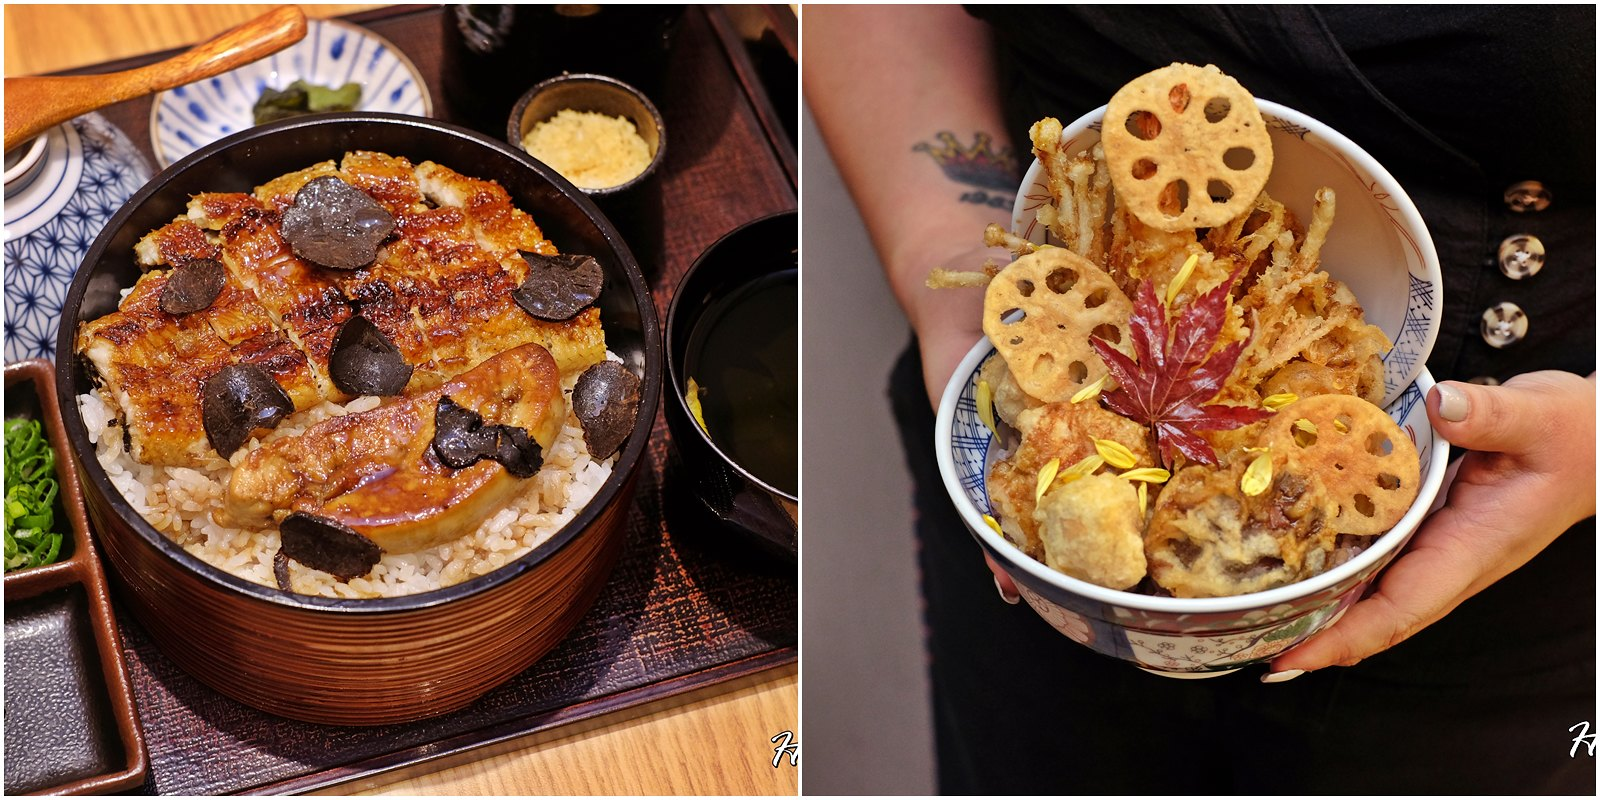 [SG EATS] Celebrate Autumn with Man Man Unagi & Tendon Kohaku – Seasonal Dishes